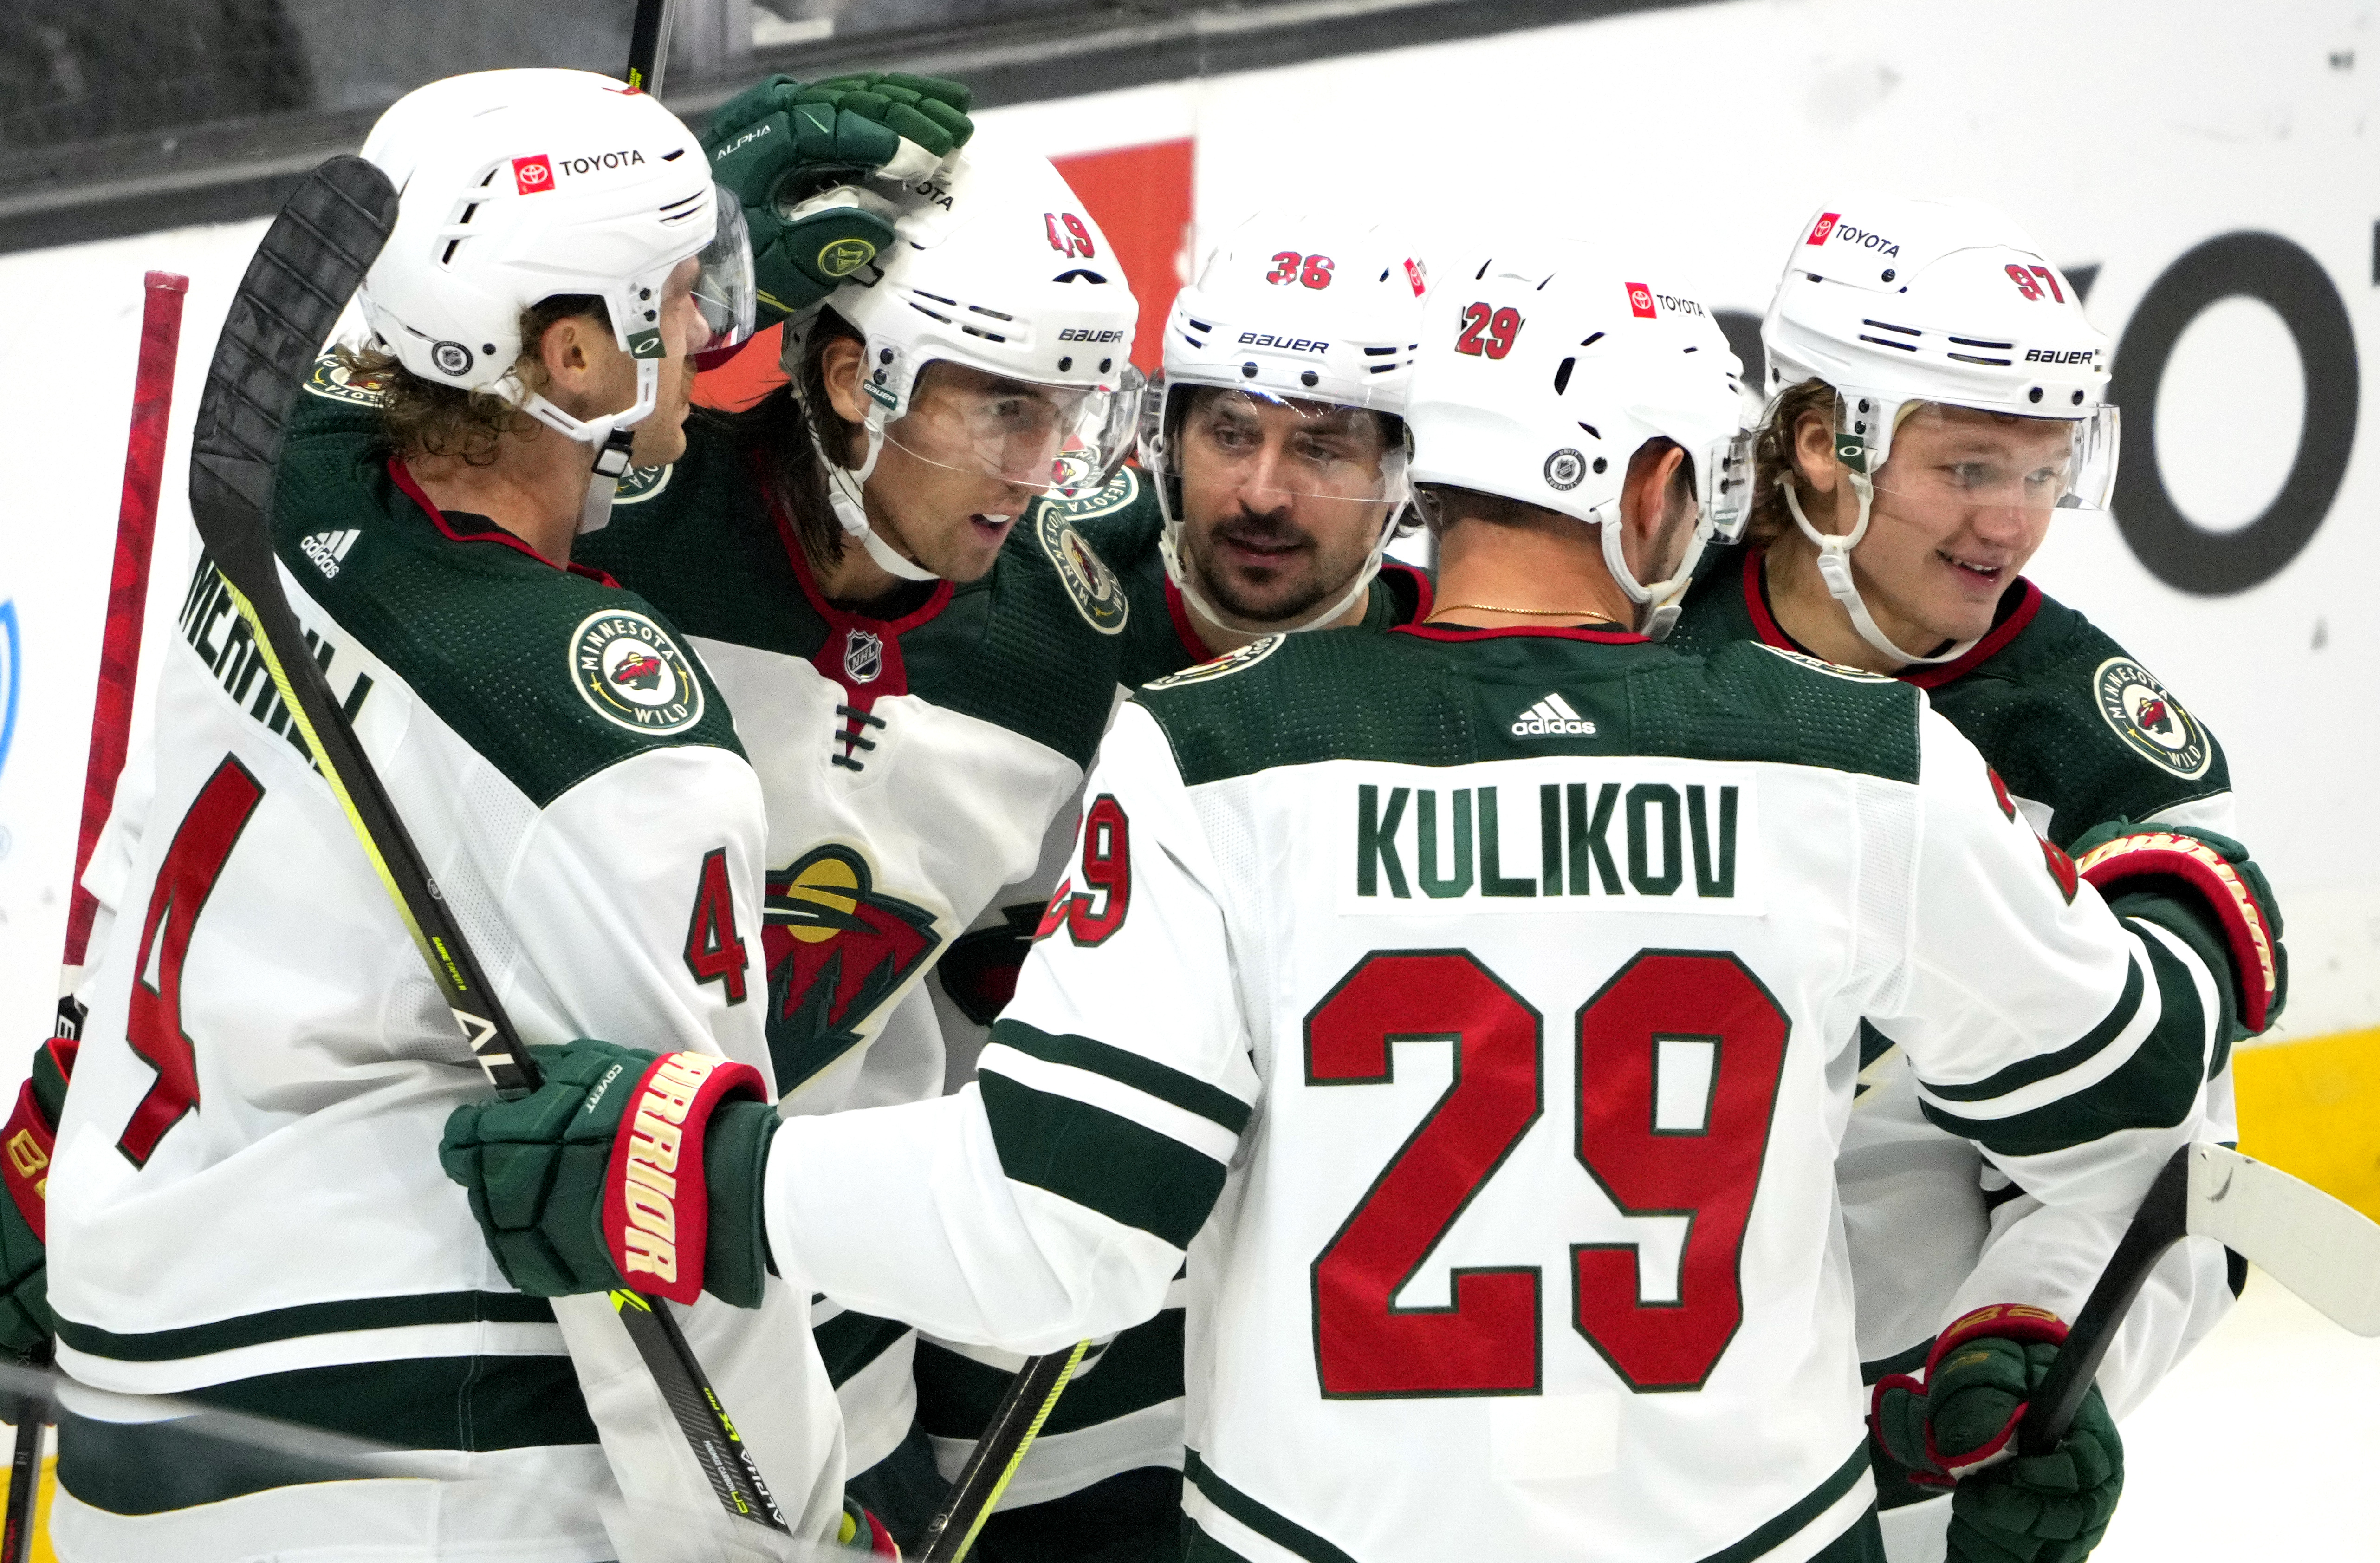 Minnesota Wild defeated the Los Angeles Kings 3-2 during a NHL hockey game at Staples Center in Los Angeles.